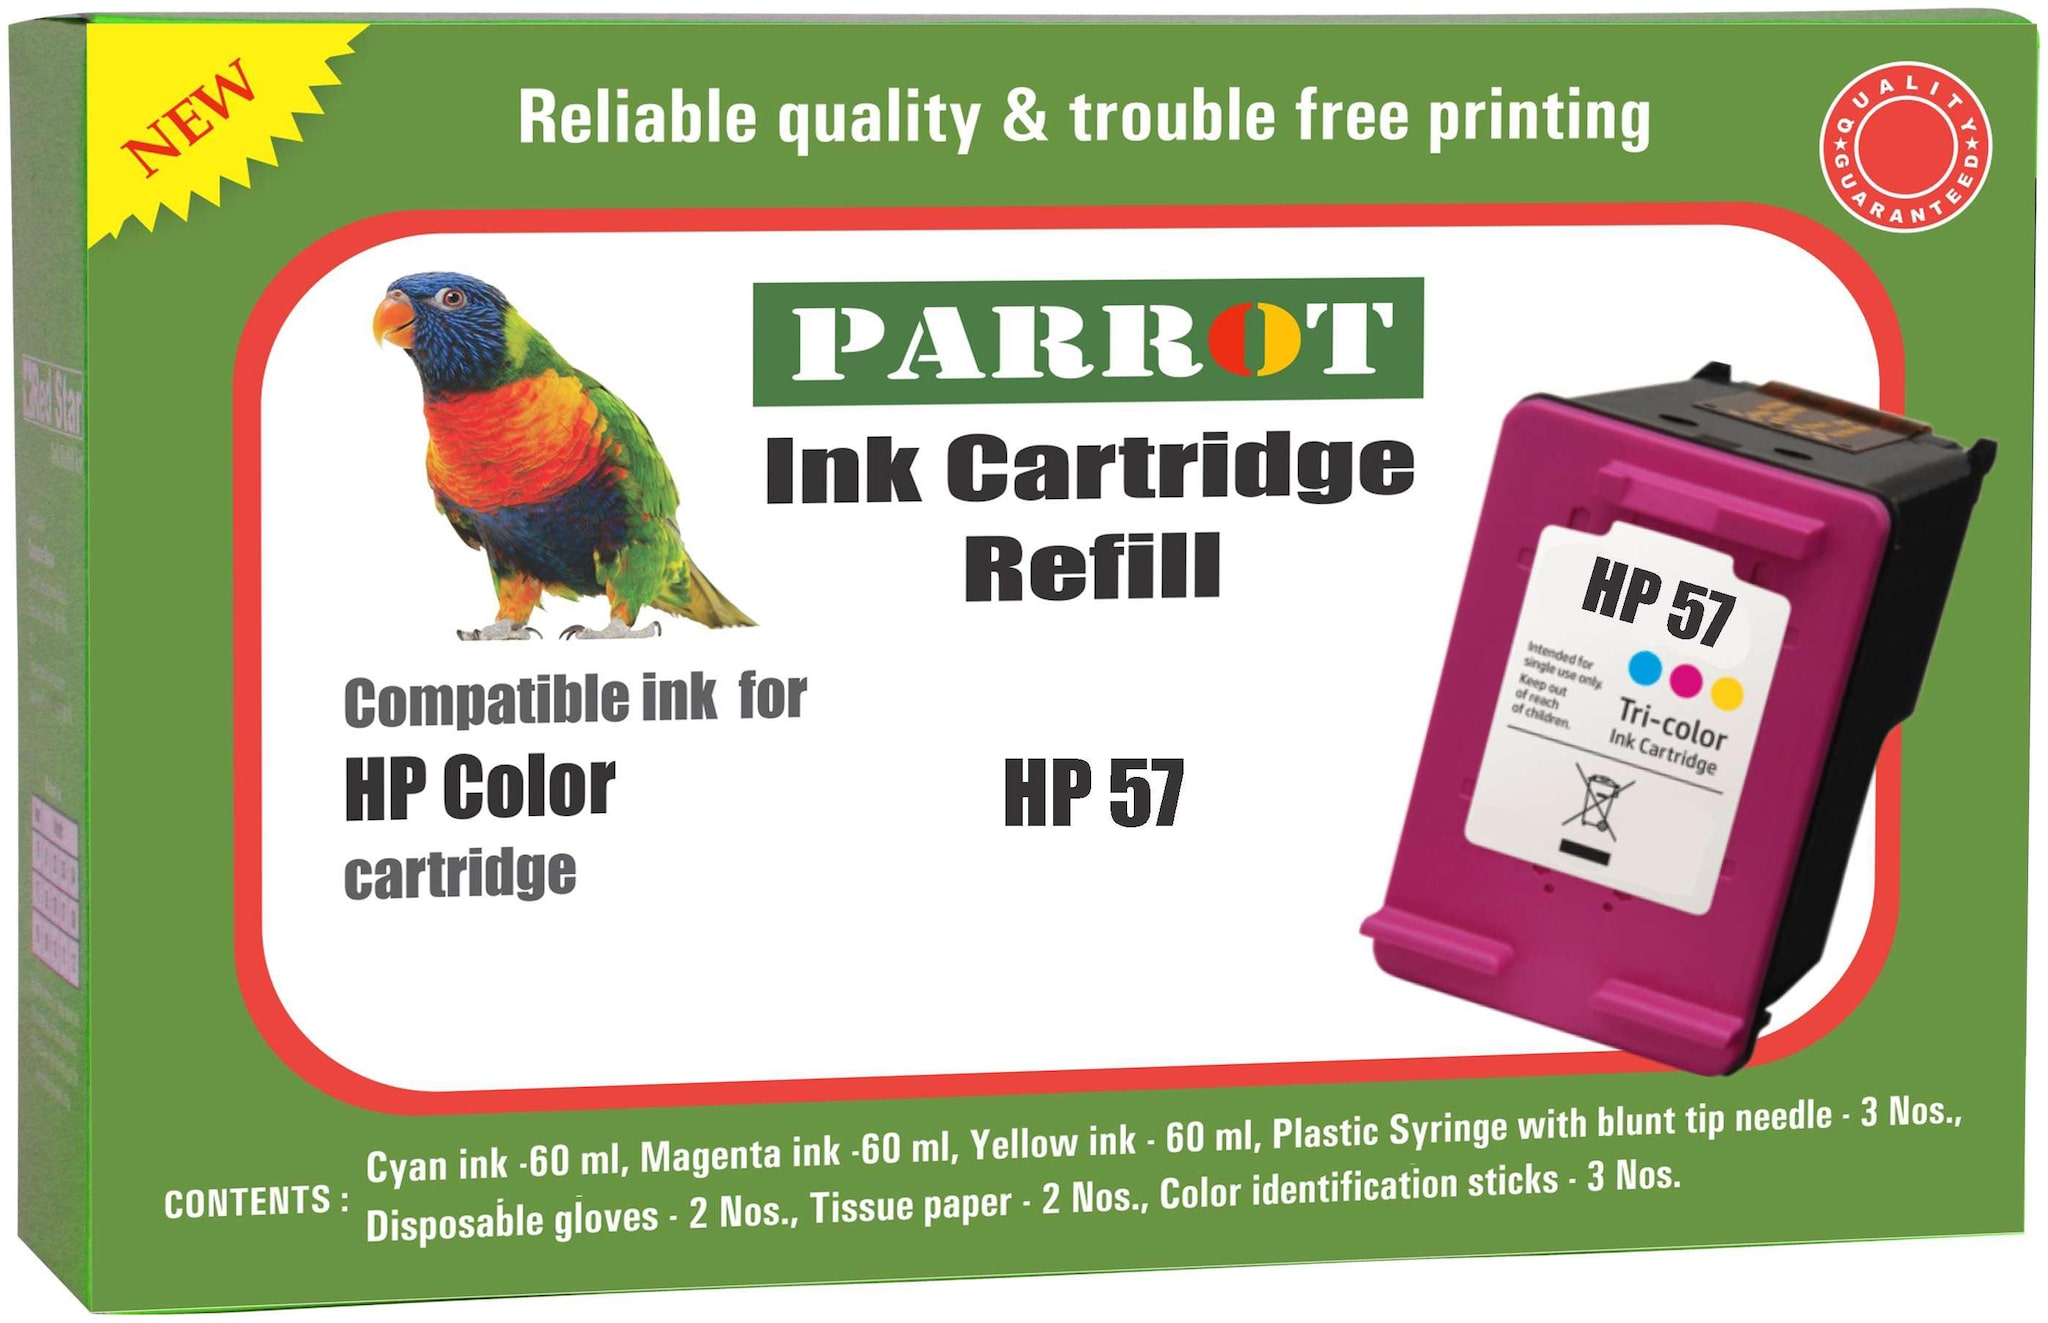 Parrot ink cartridge refill for HP 57  color ink cartridge